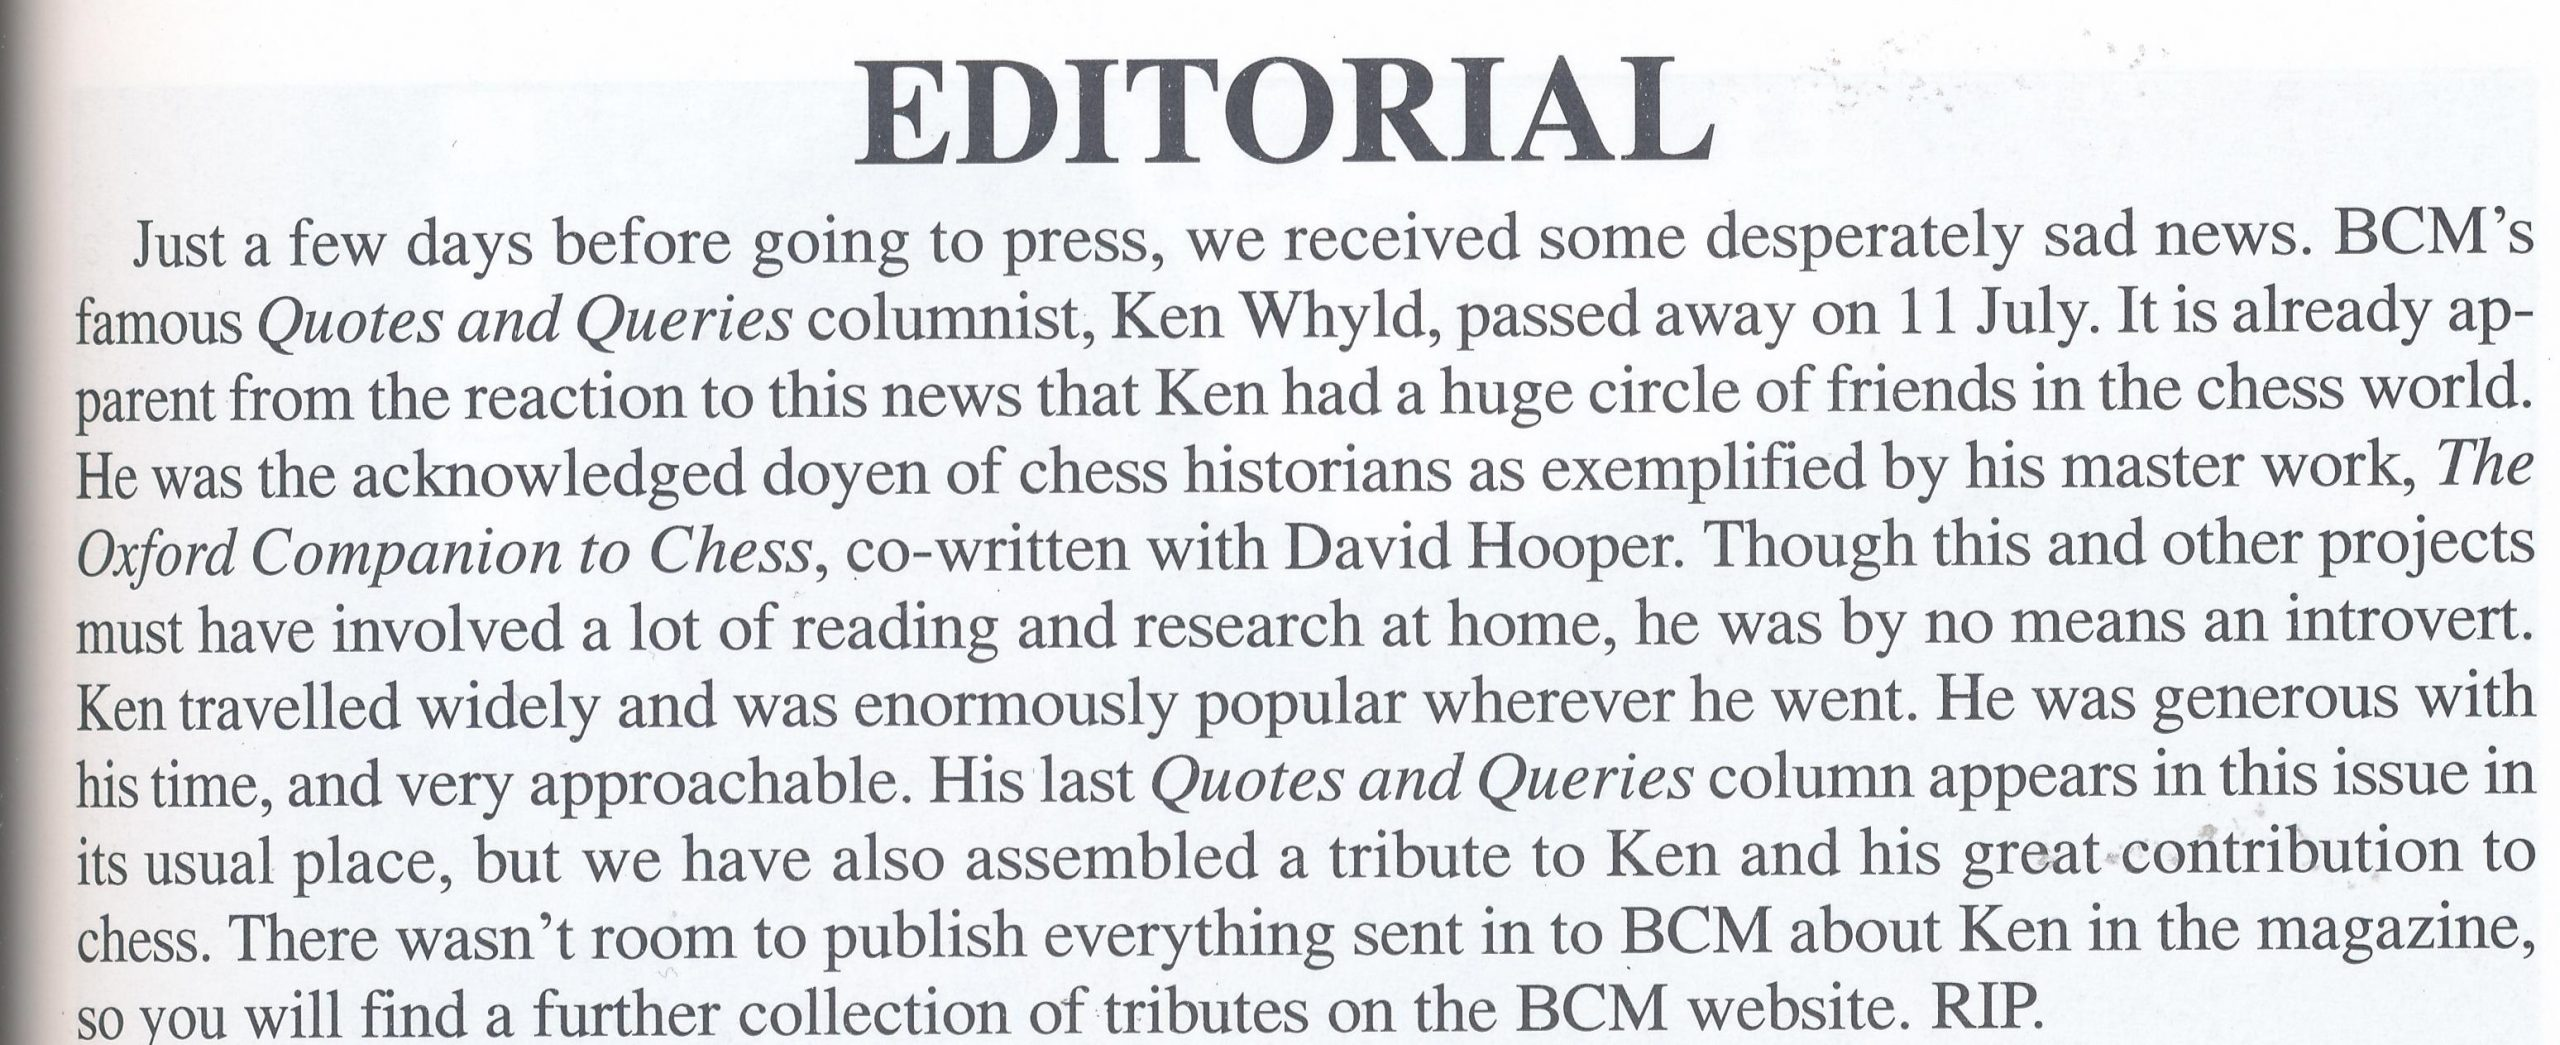 Editorial from British Chess Magazine, Volume CXXIII (123), Number 8 (August), page 395 by Editor, John Saunders